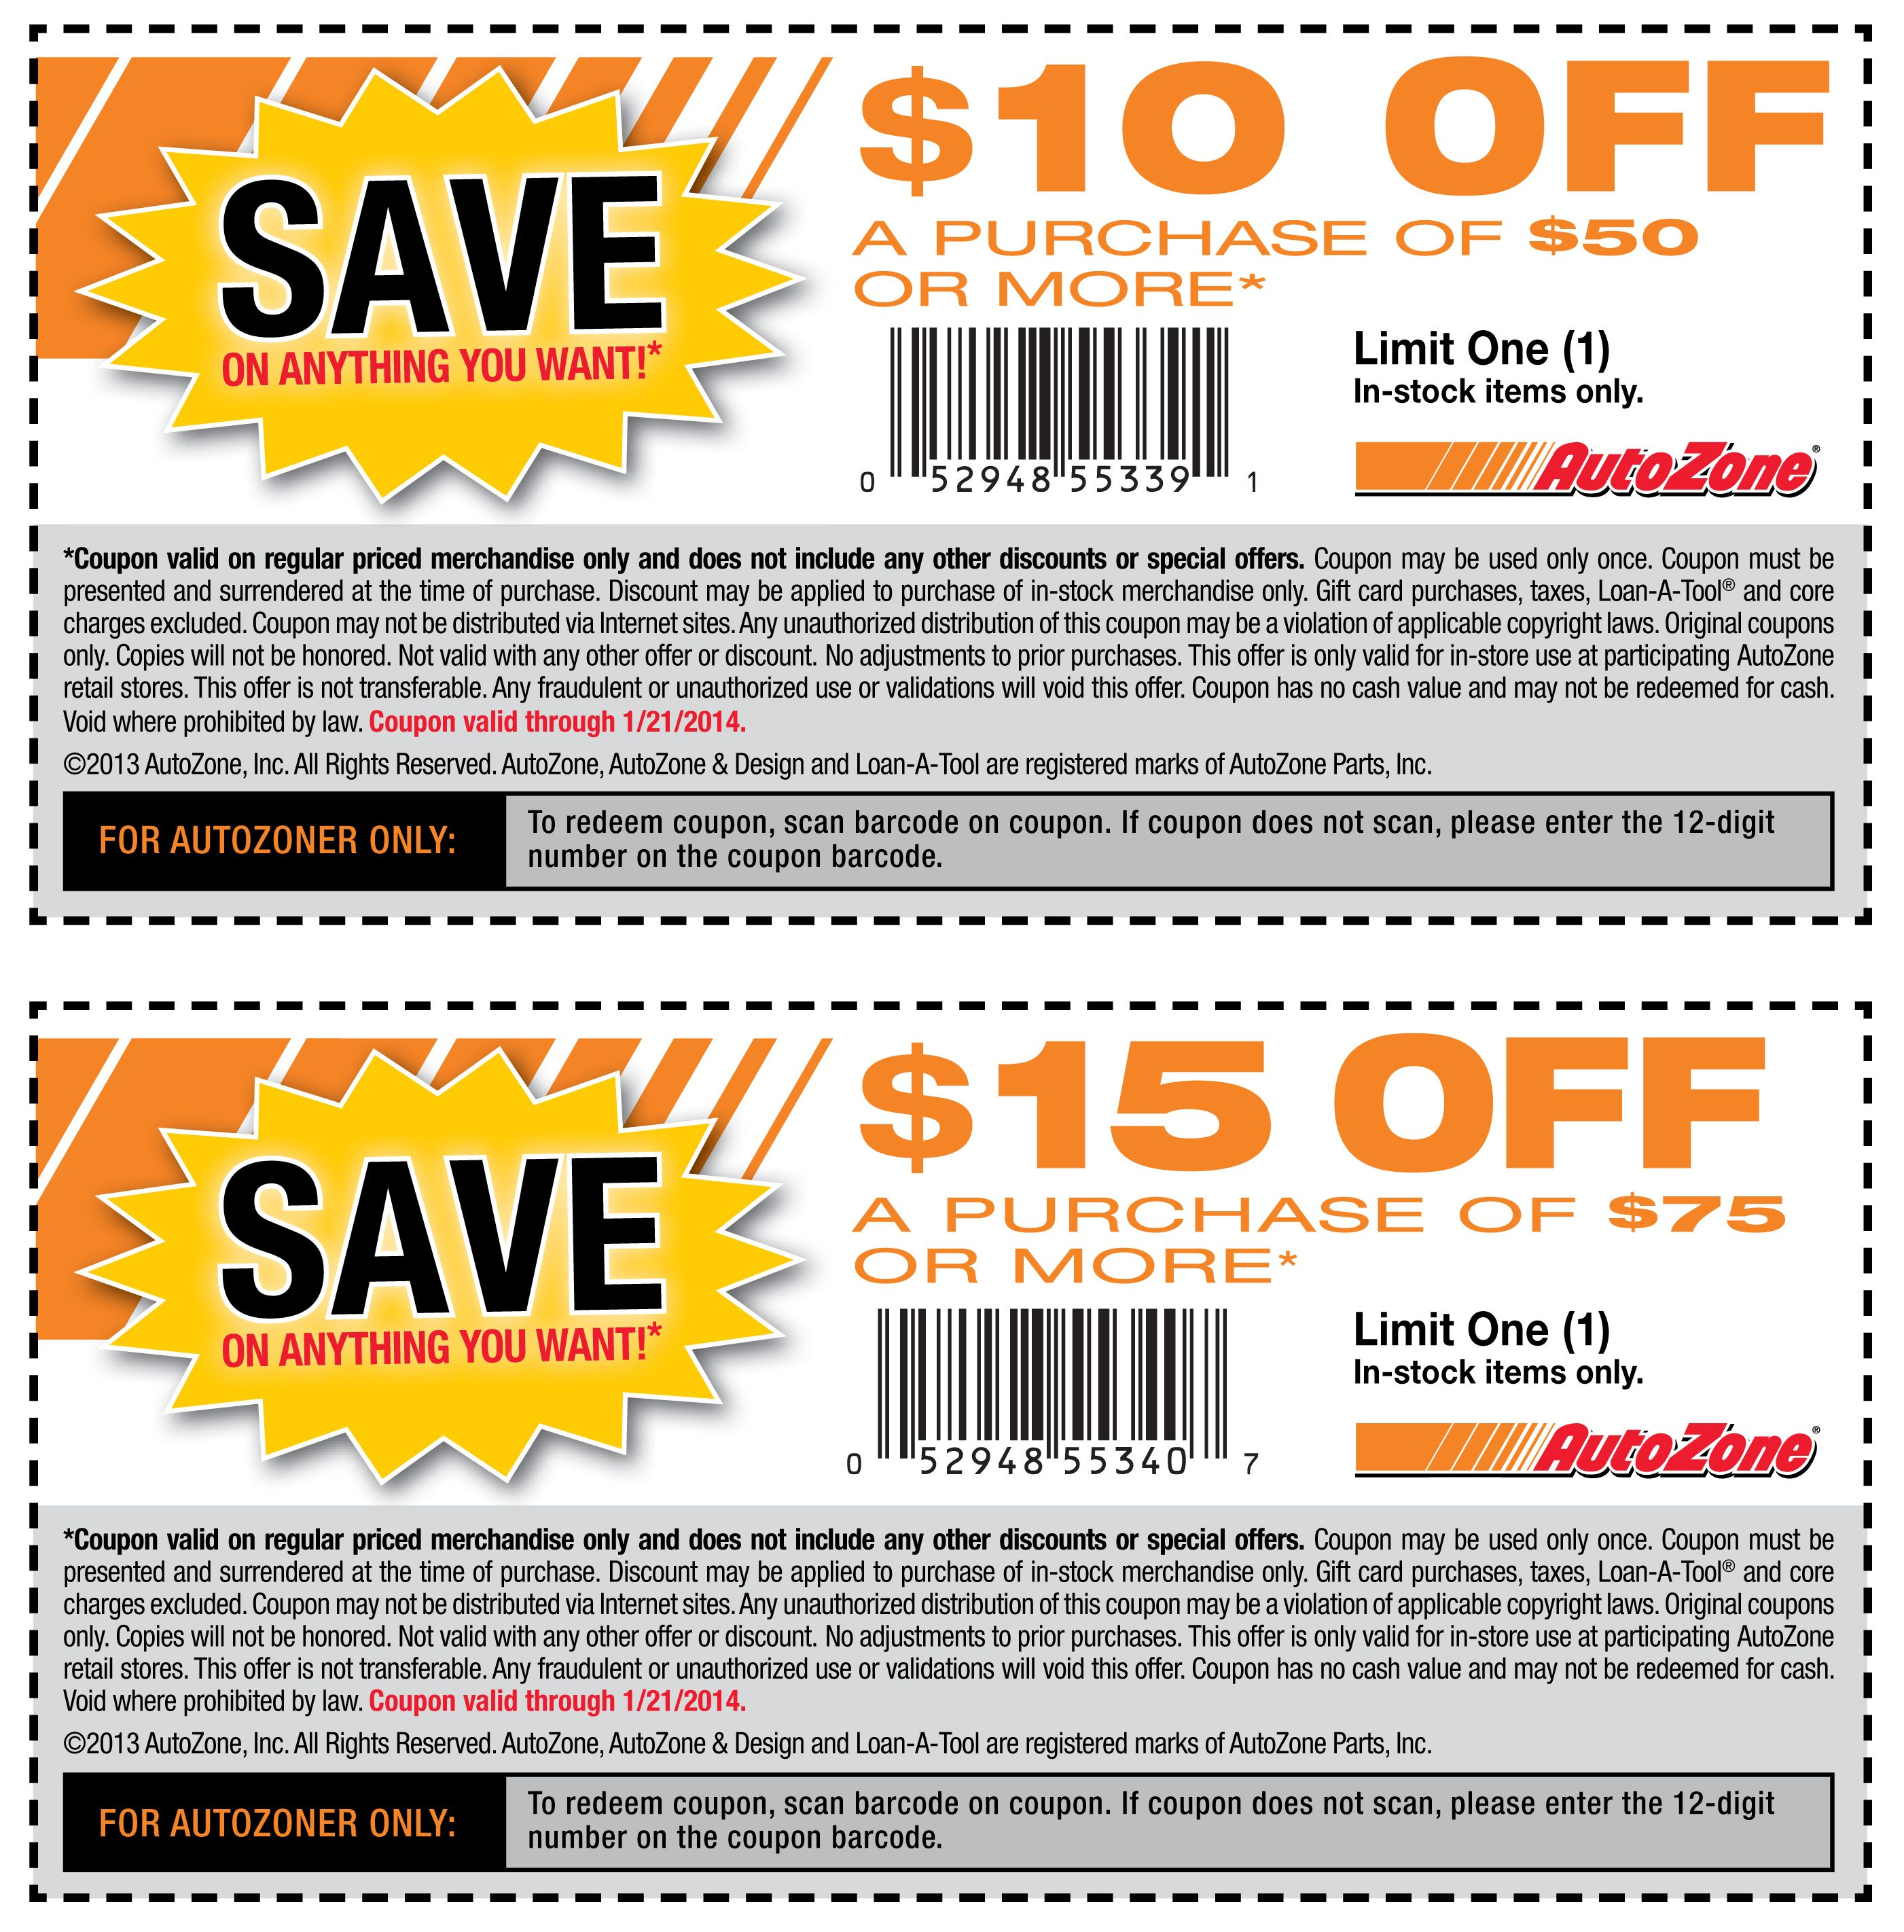 picture about Gnc Printable Coupons 10 Off 50 called Autozone Discount codes Printable Discount coupons Printable discount coupons